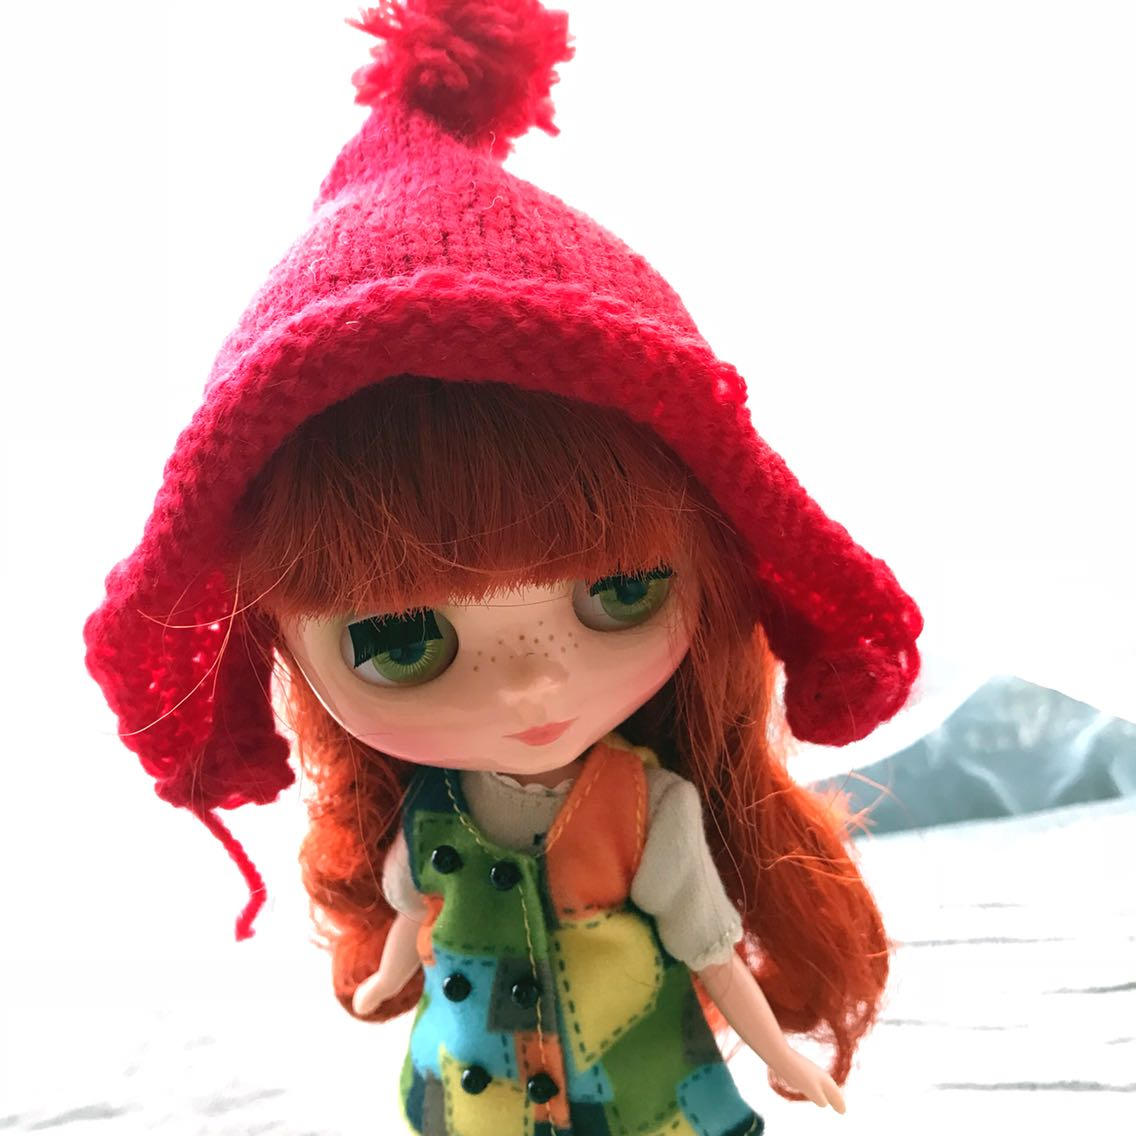 BJD doll special area ball joint doll 6 points SD baby Blythe small cloth baby clothing accessories wool hat